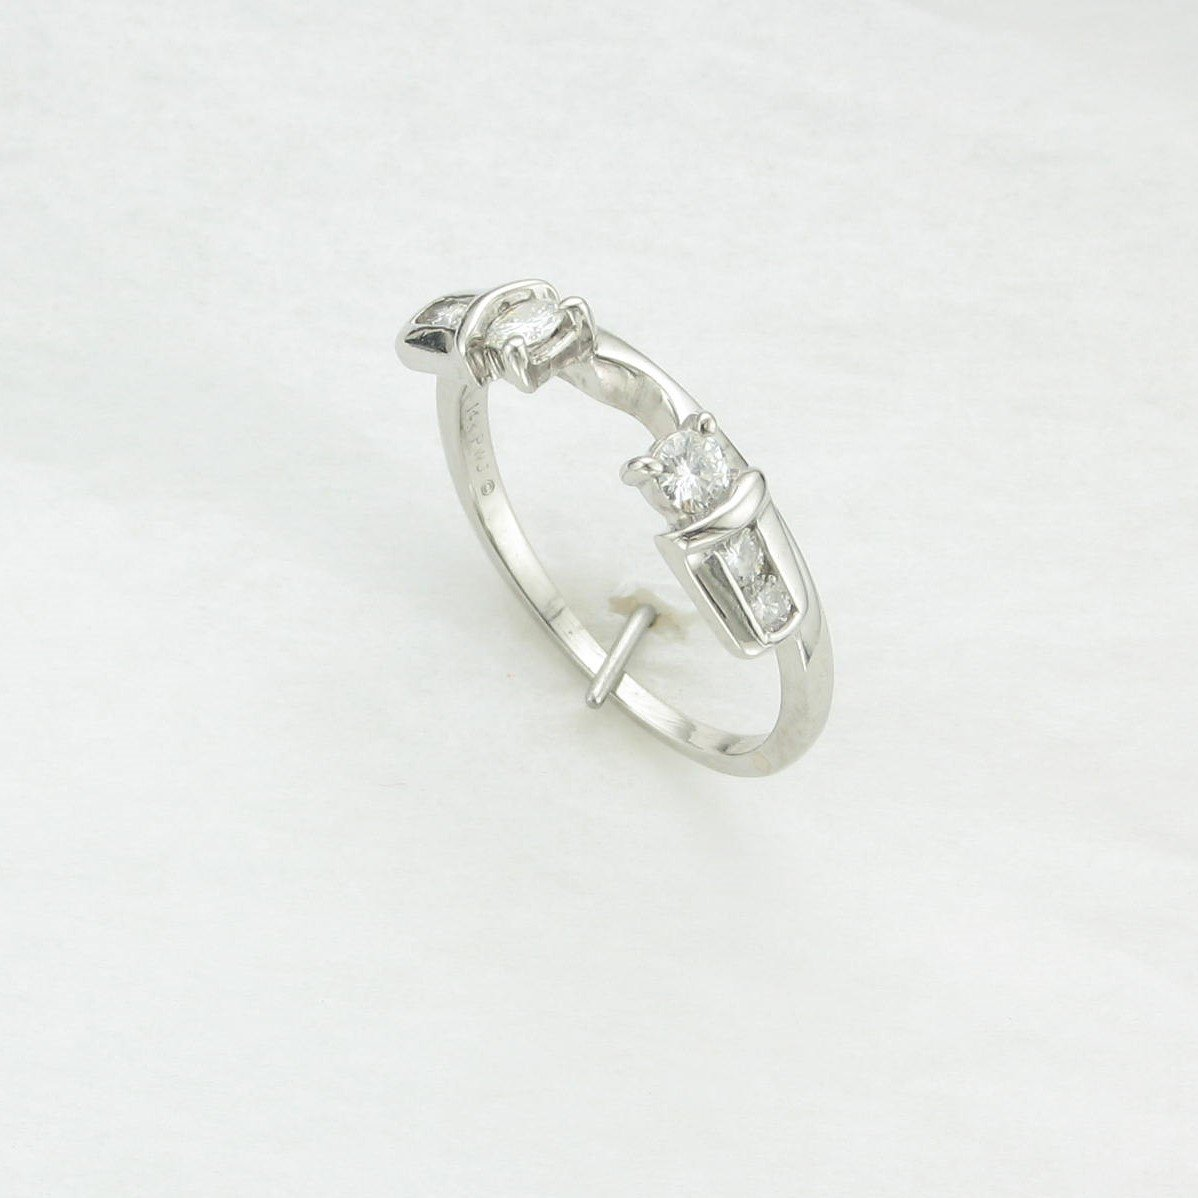 0.30 tcw Diamond Jacket Ring set in 14K White Gold